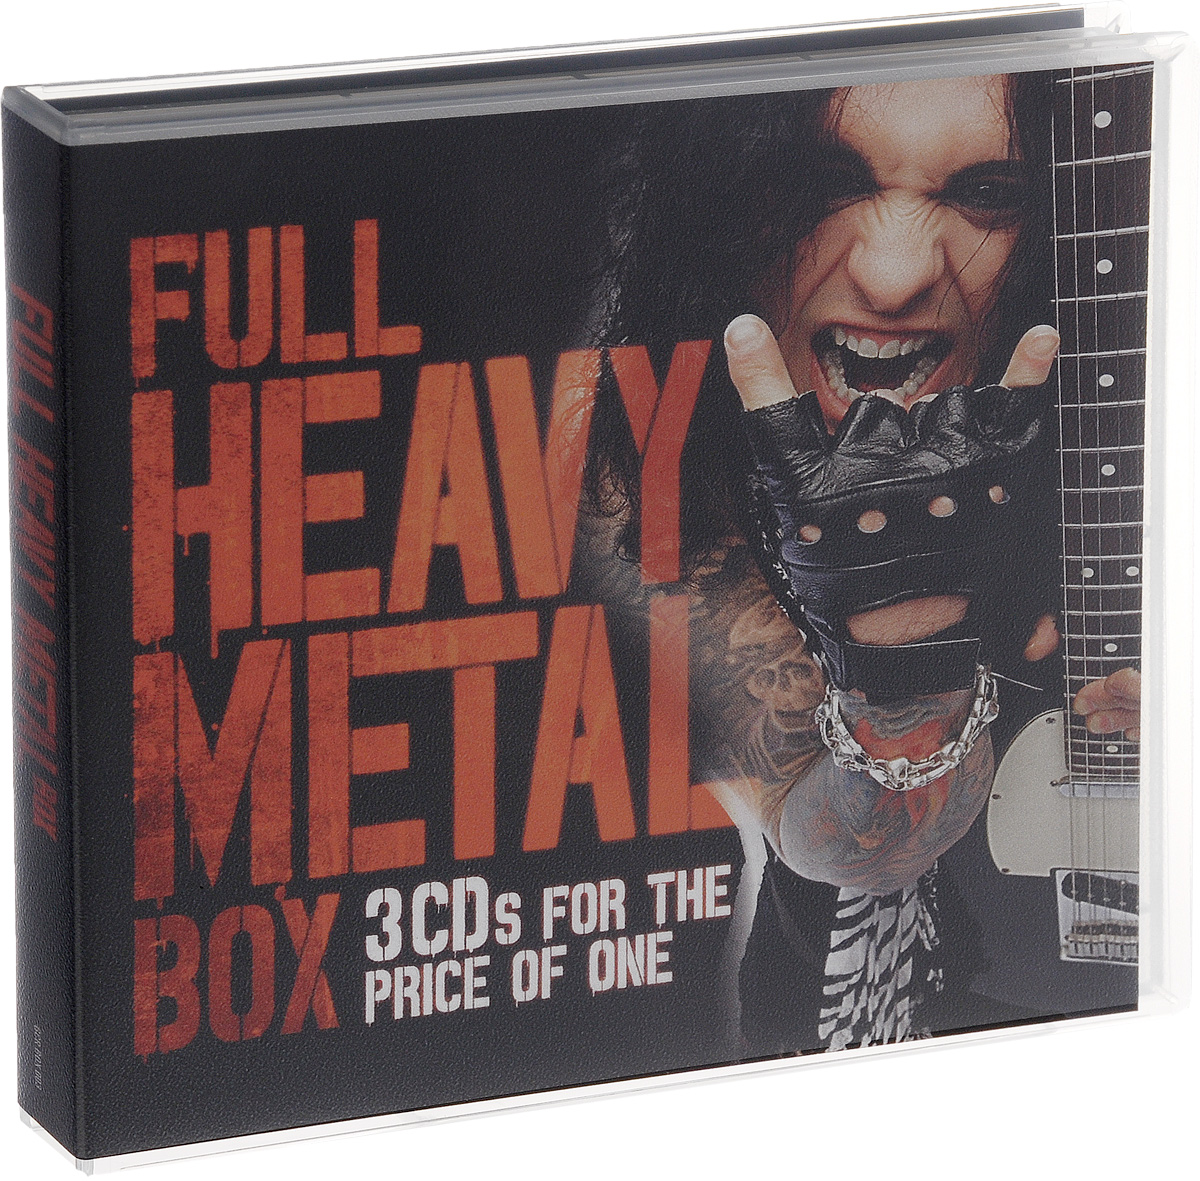 Full Heavy Metal (3 CD)